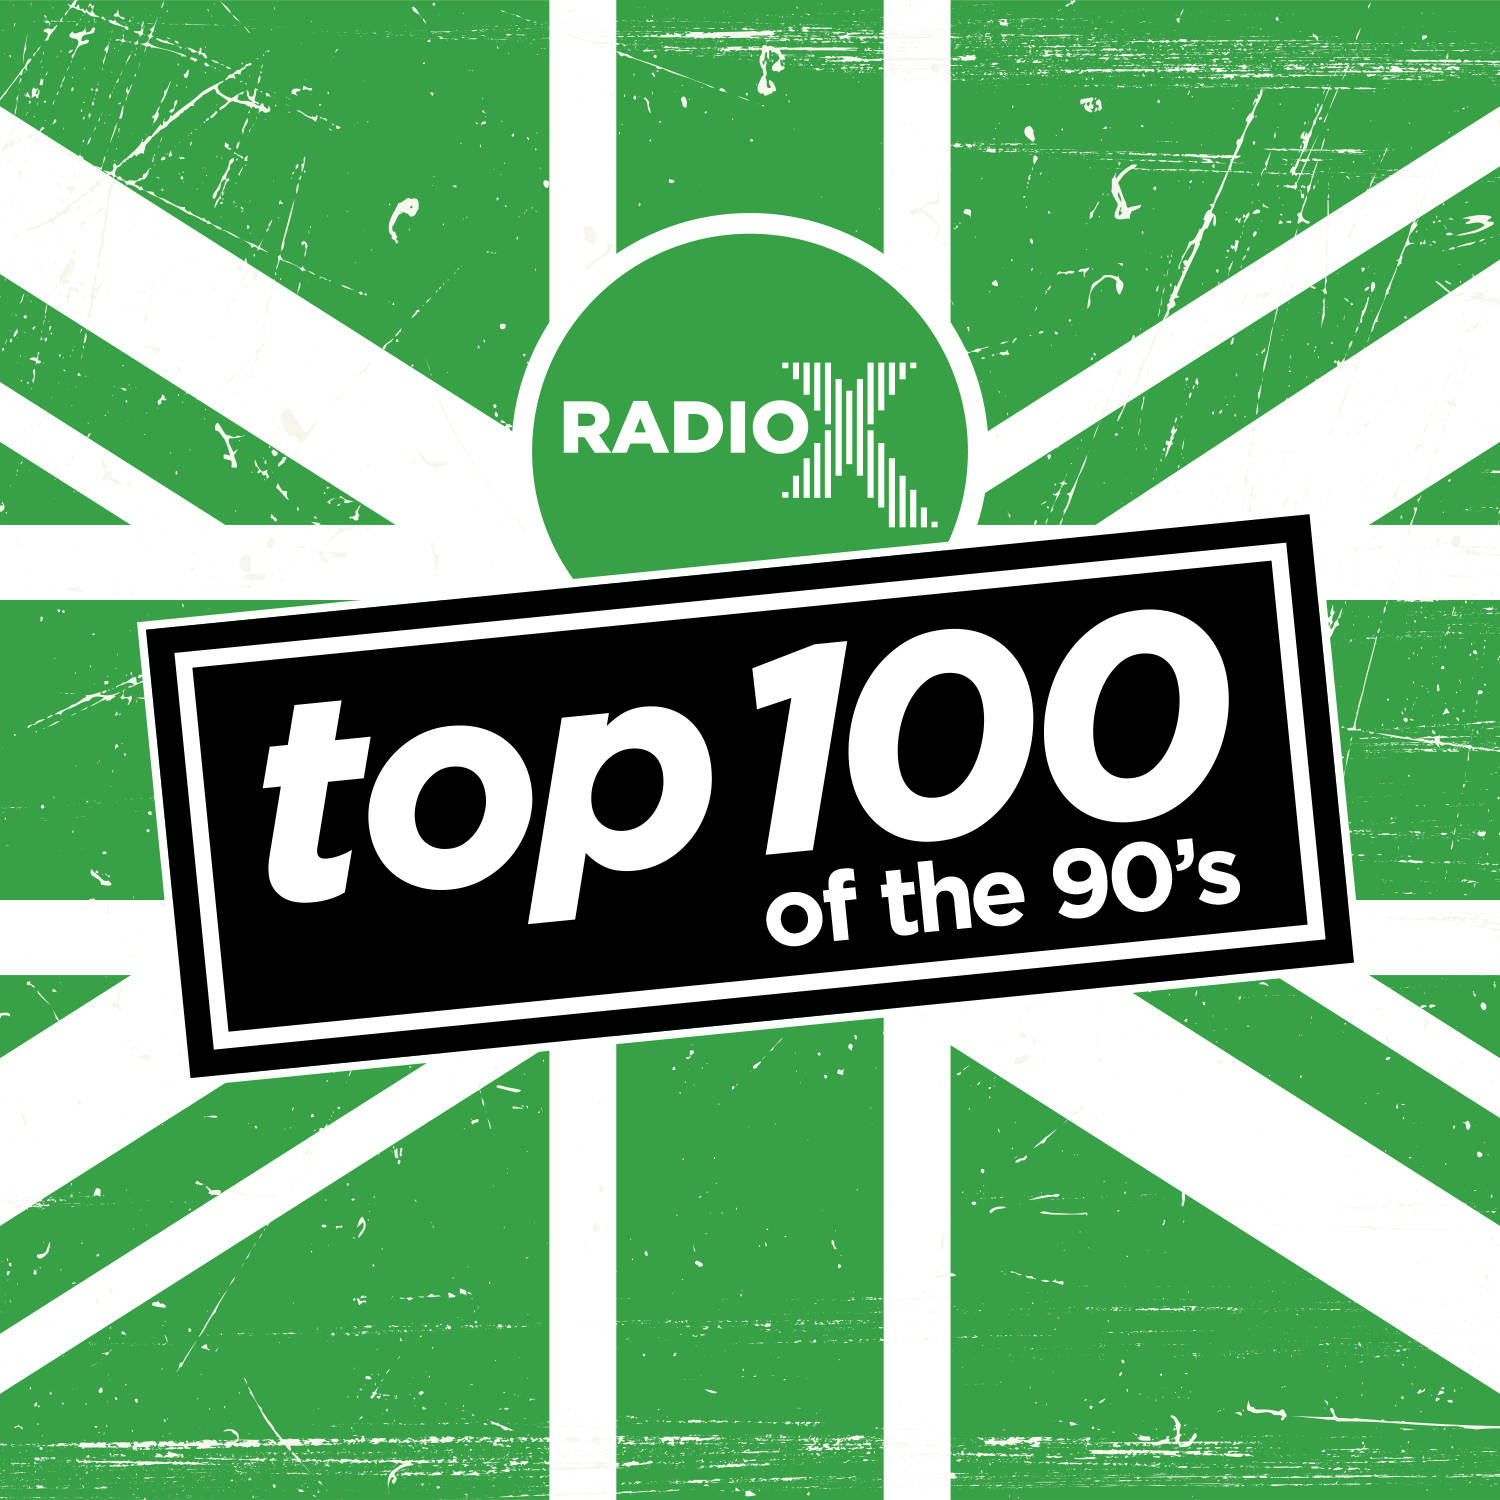 Radio X Top 100 of The 90s image